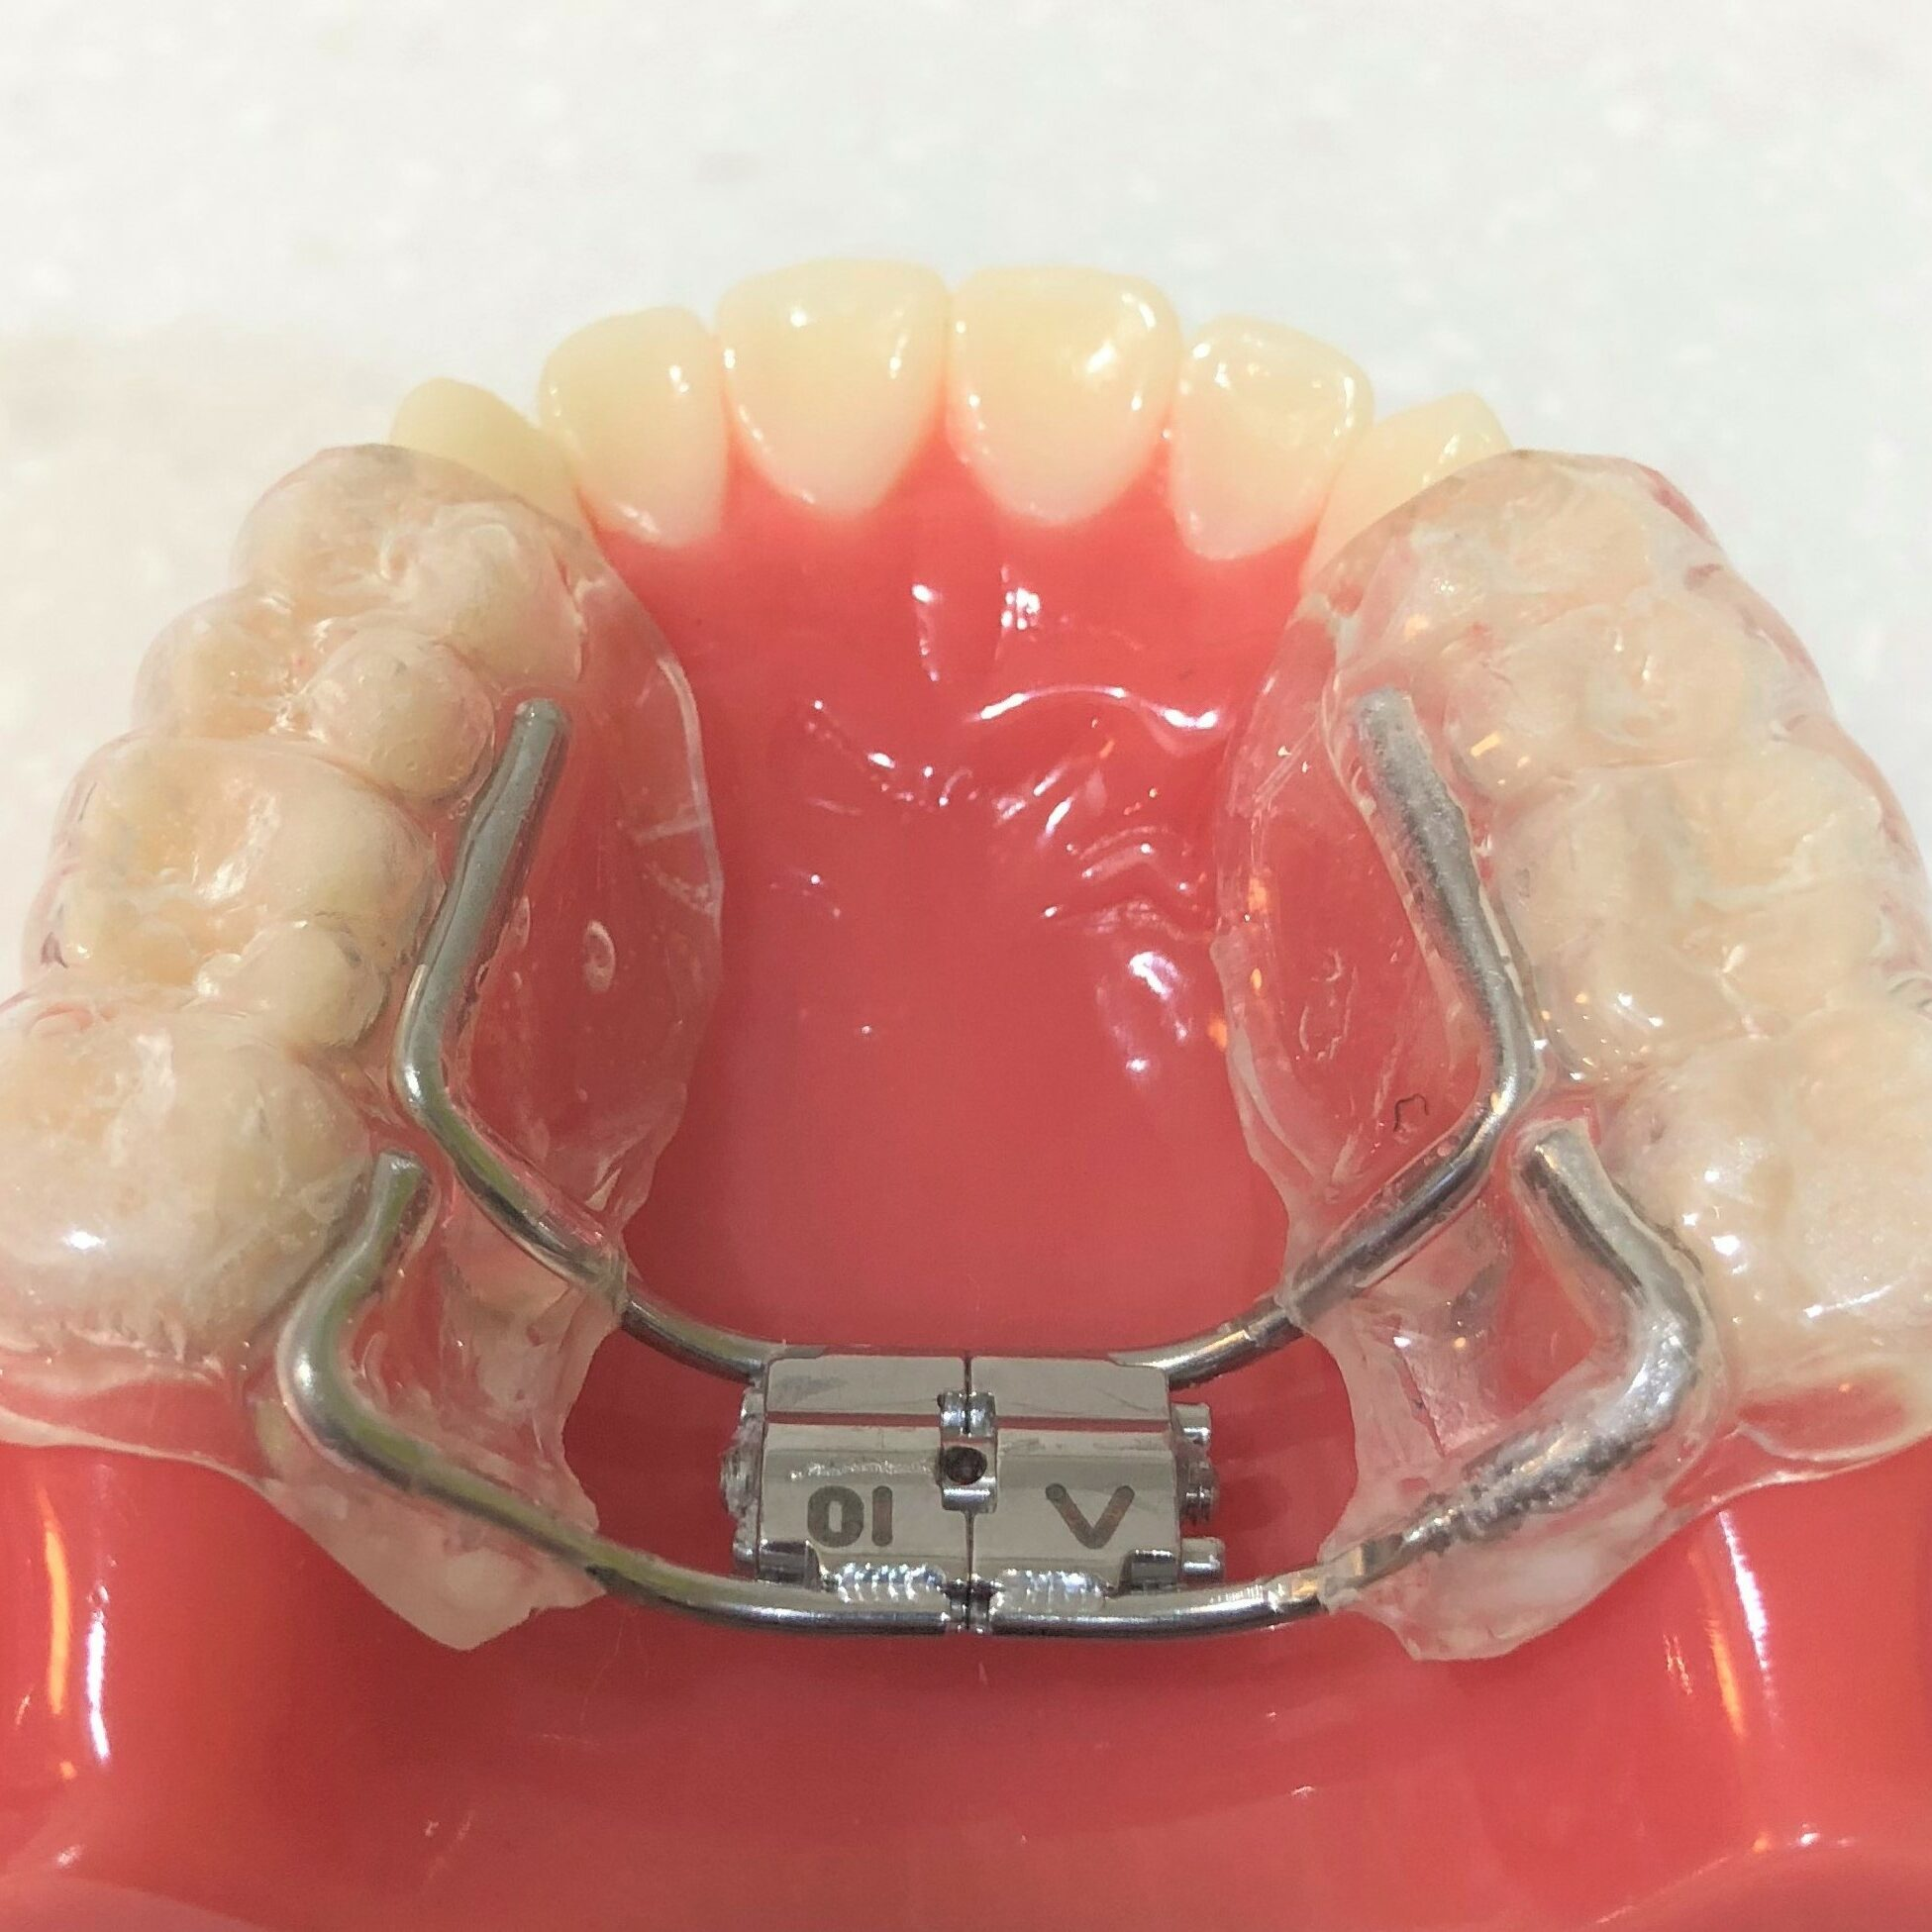 Upper expansion plate with plastic covering the molars and premolars. Widens the upper, makes more space and broadens the smile. Mark Cordato, specialist orthodontist, Bathurst, Blayney, Oberon, Mudgee.